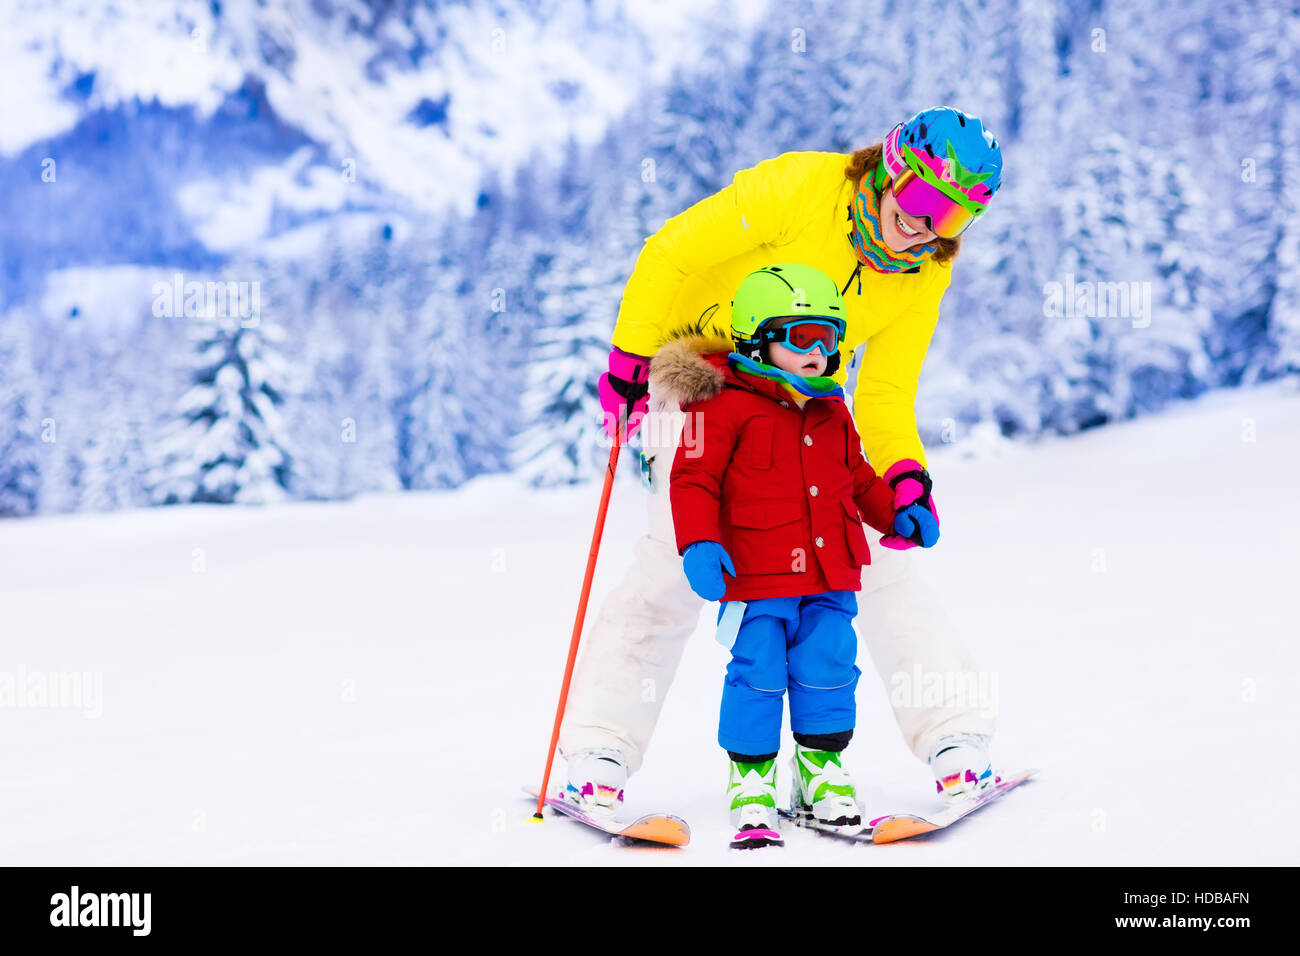 Family ski vacation. Group of skiers in Swiss Alps mountains. Mother and child skiing in winter. Parents teach kids - Stock Image